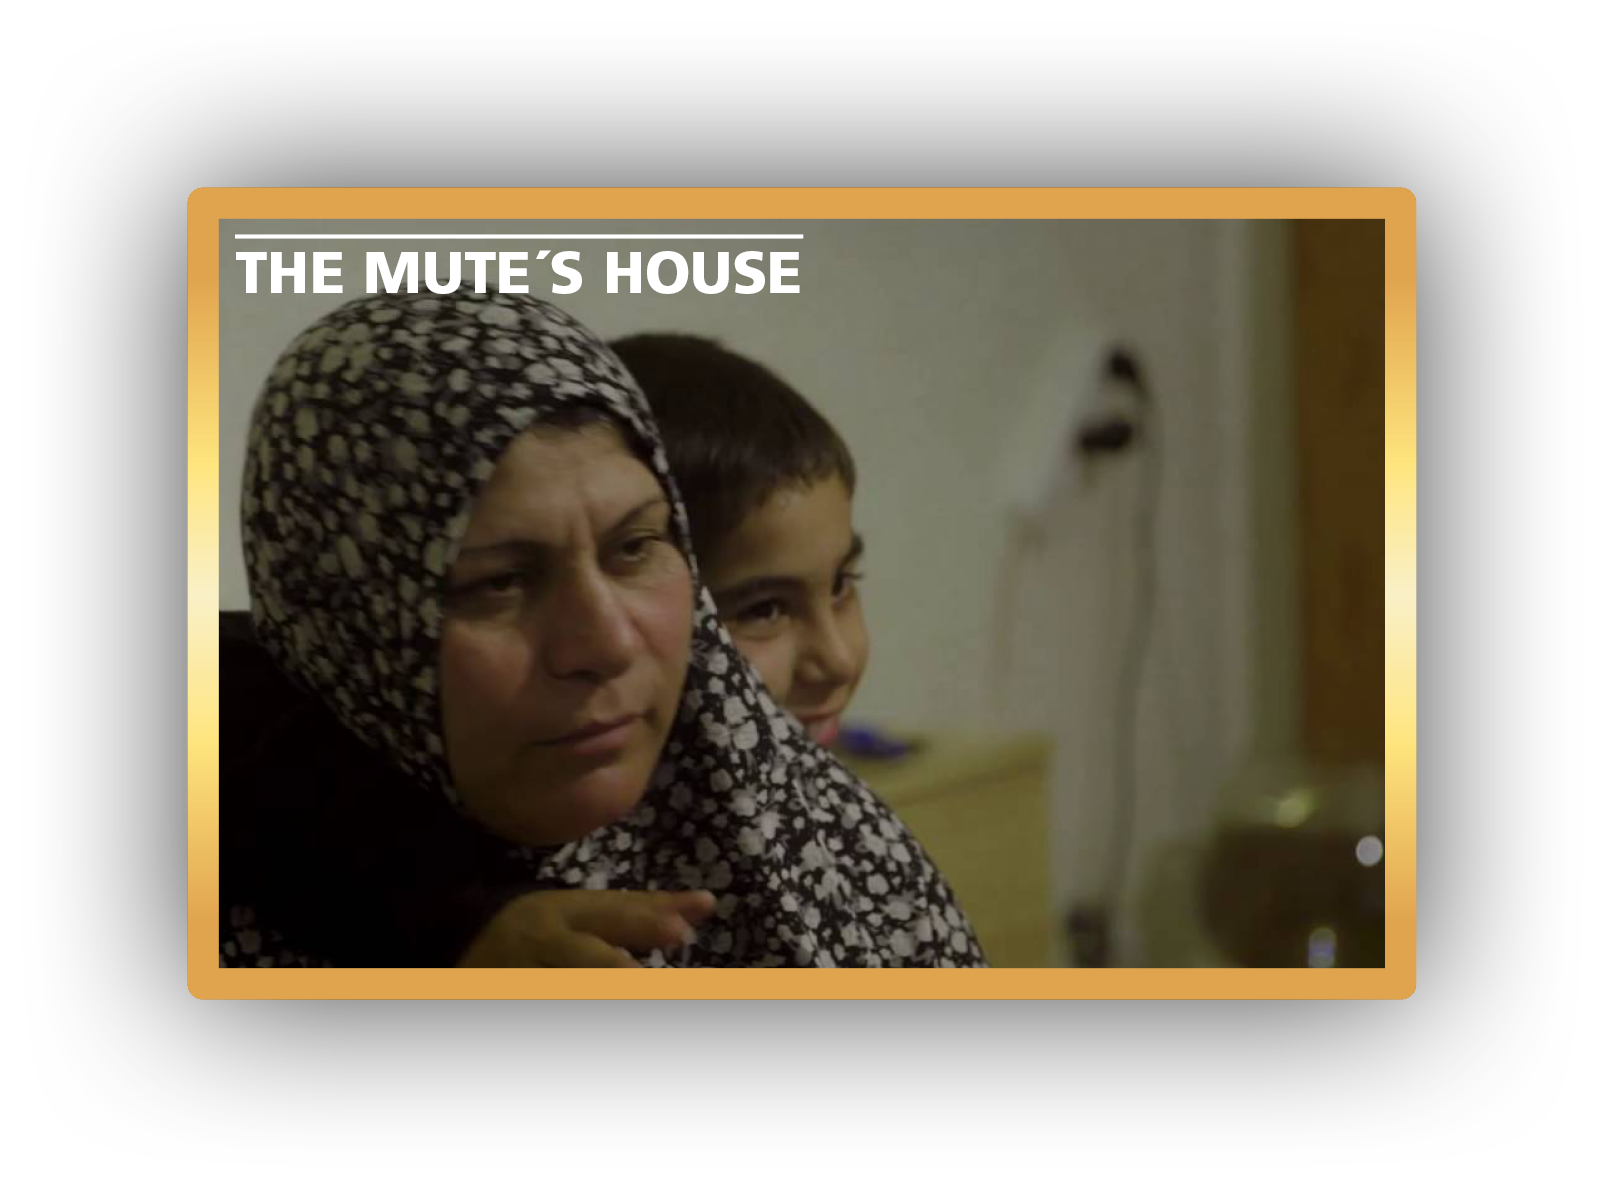 DOX 24 november kl 14:30 - The Mute´s House